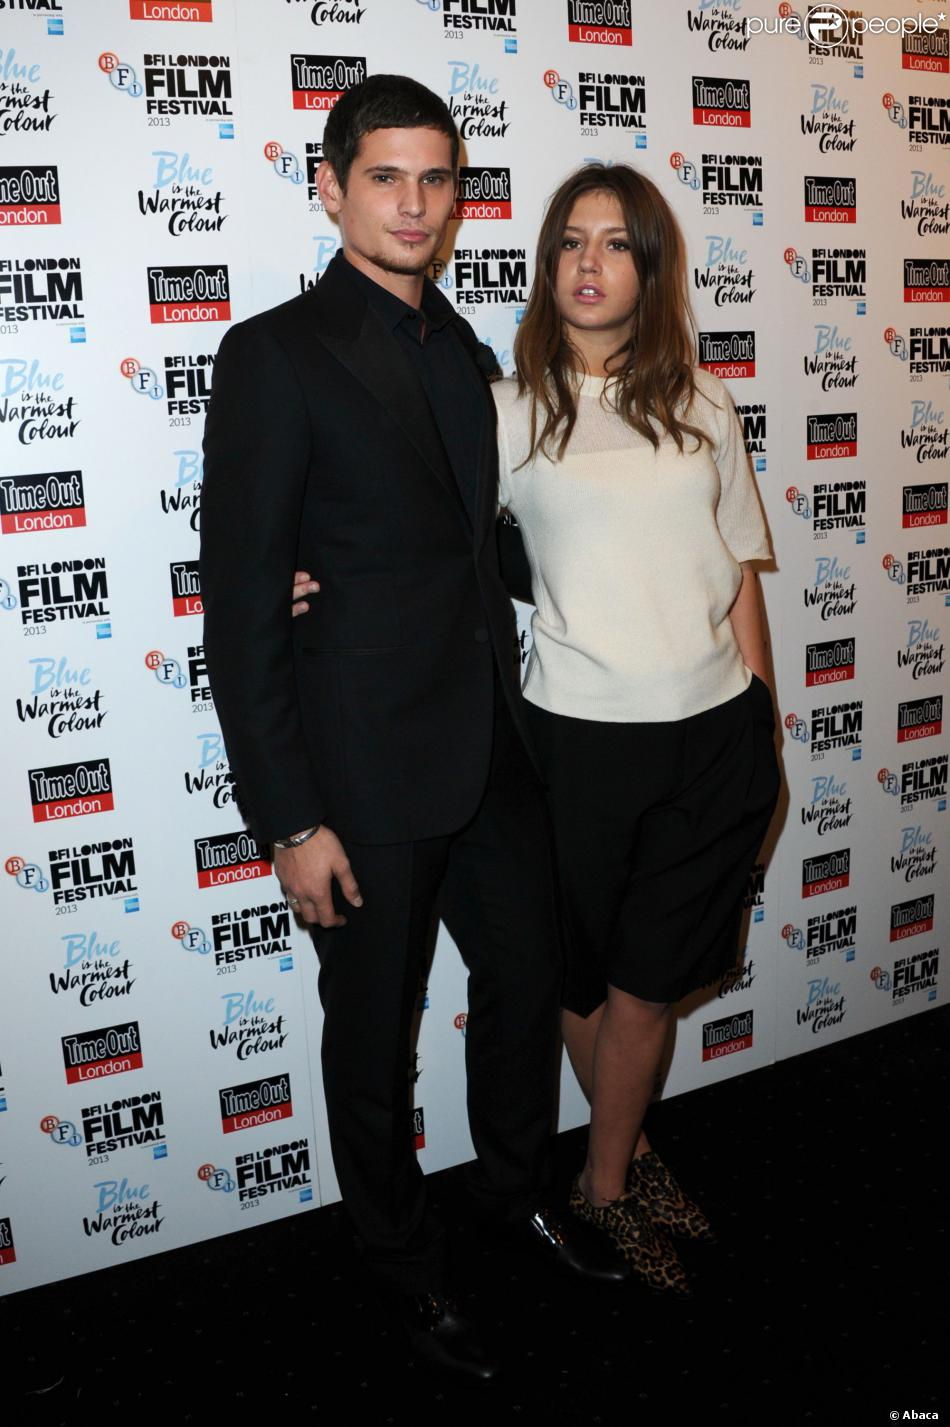 Adele Exarchopoulos couple